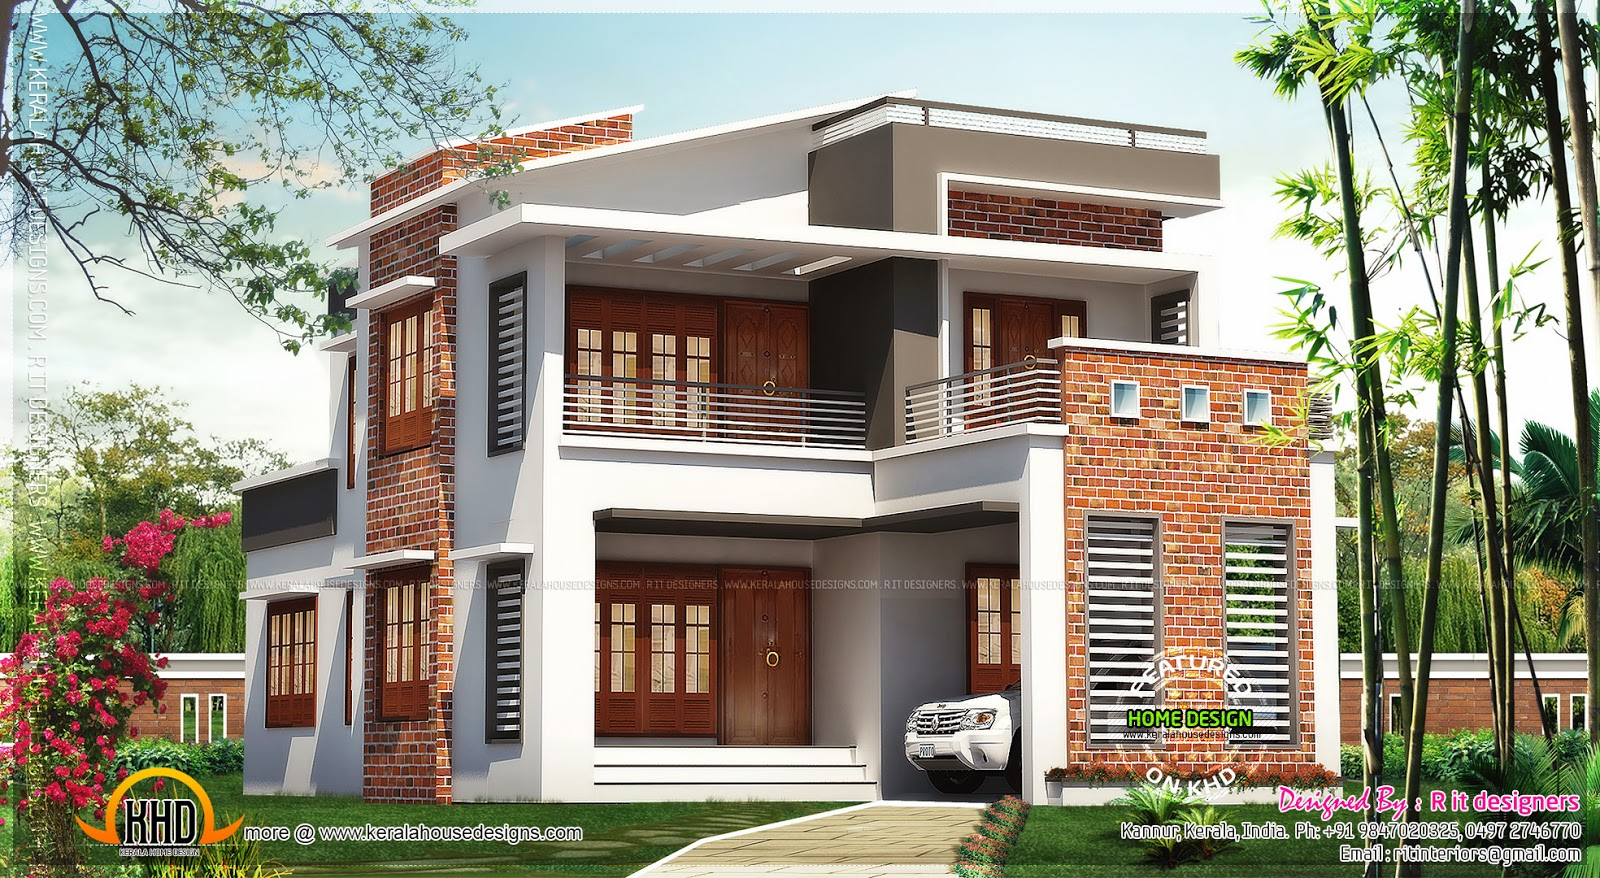 Brick mix house exterior design kerala home design and for Normal house front design